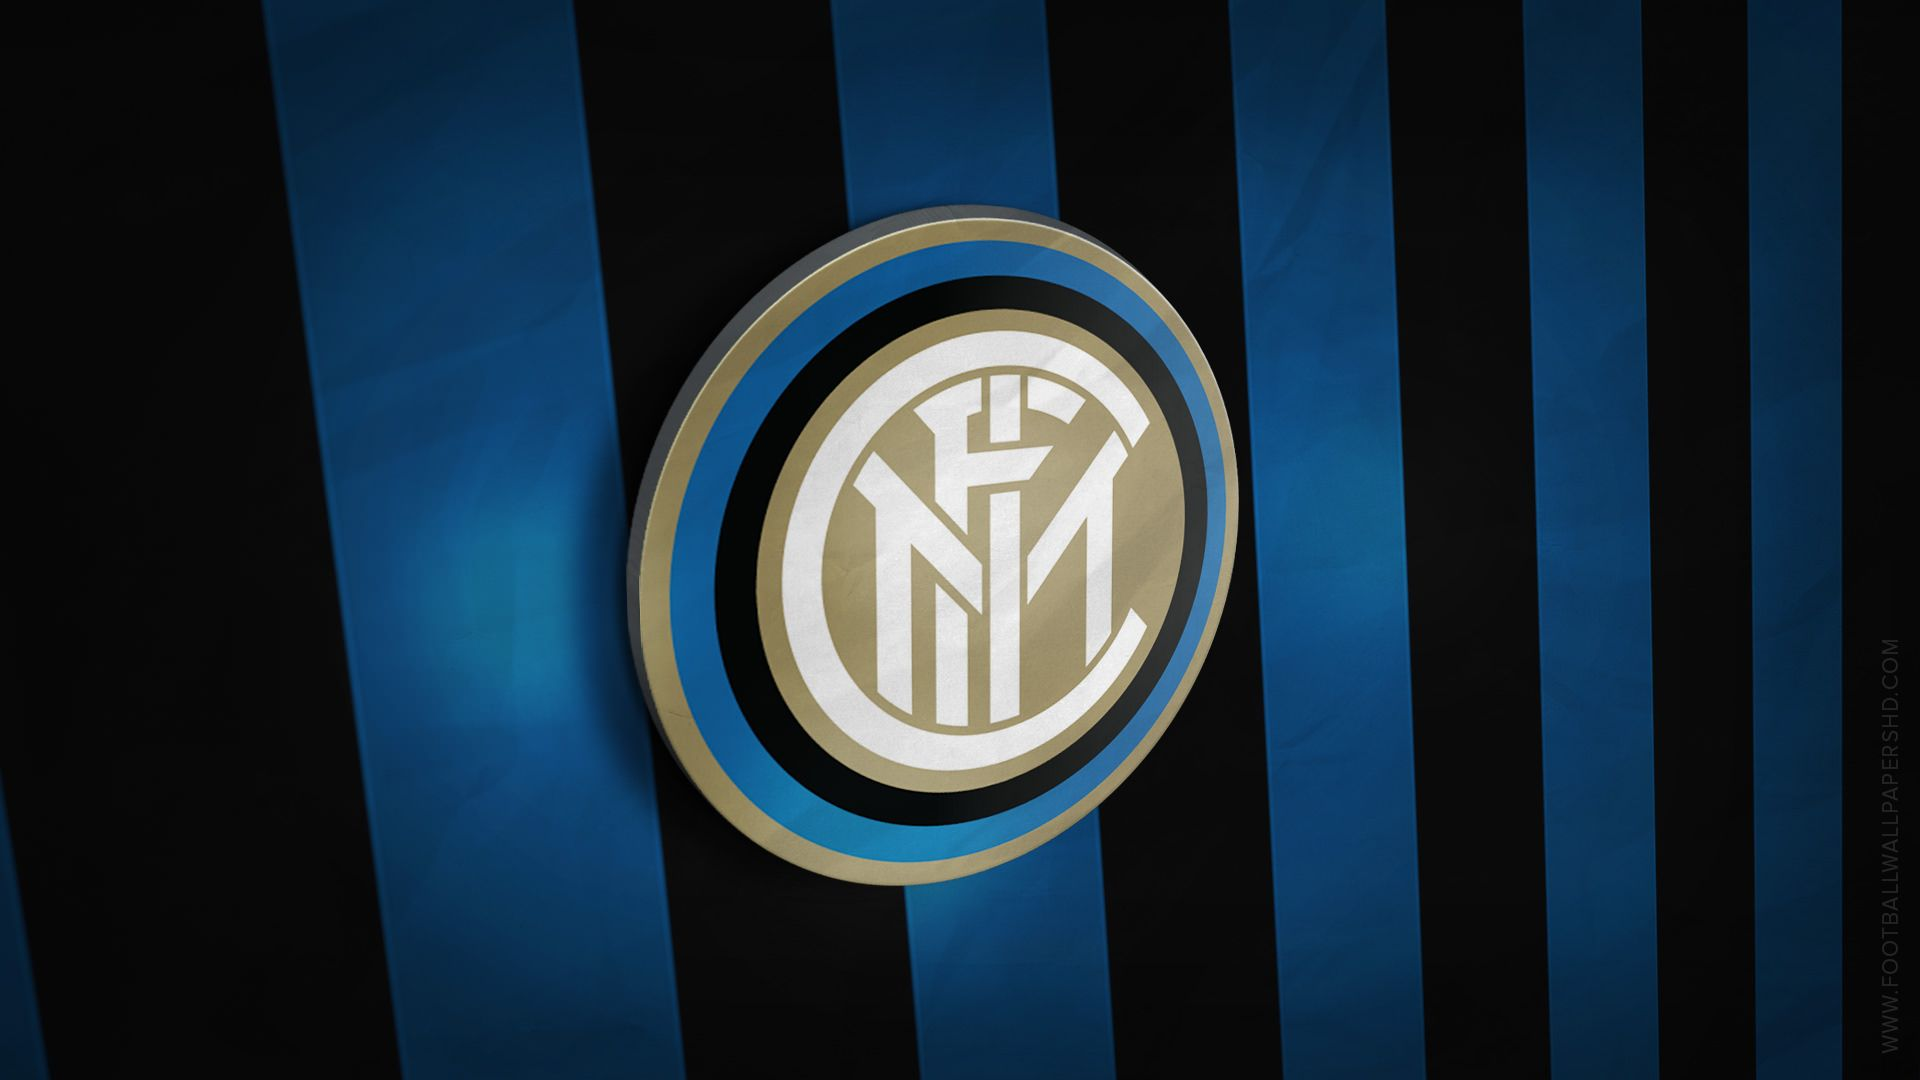 Inter Milan 3D Logo Wallpaper | Football Wallpapers HD | Pinterest ...